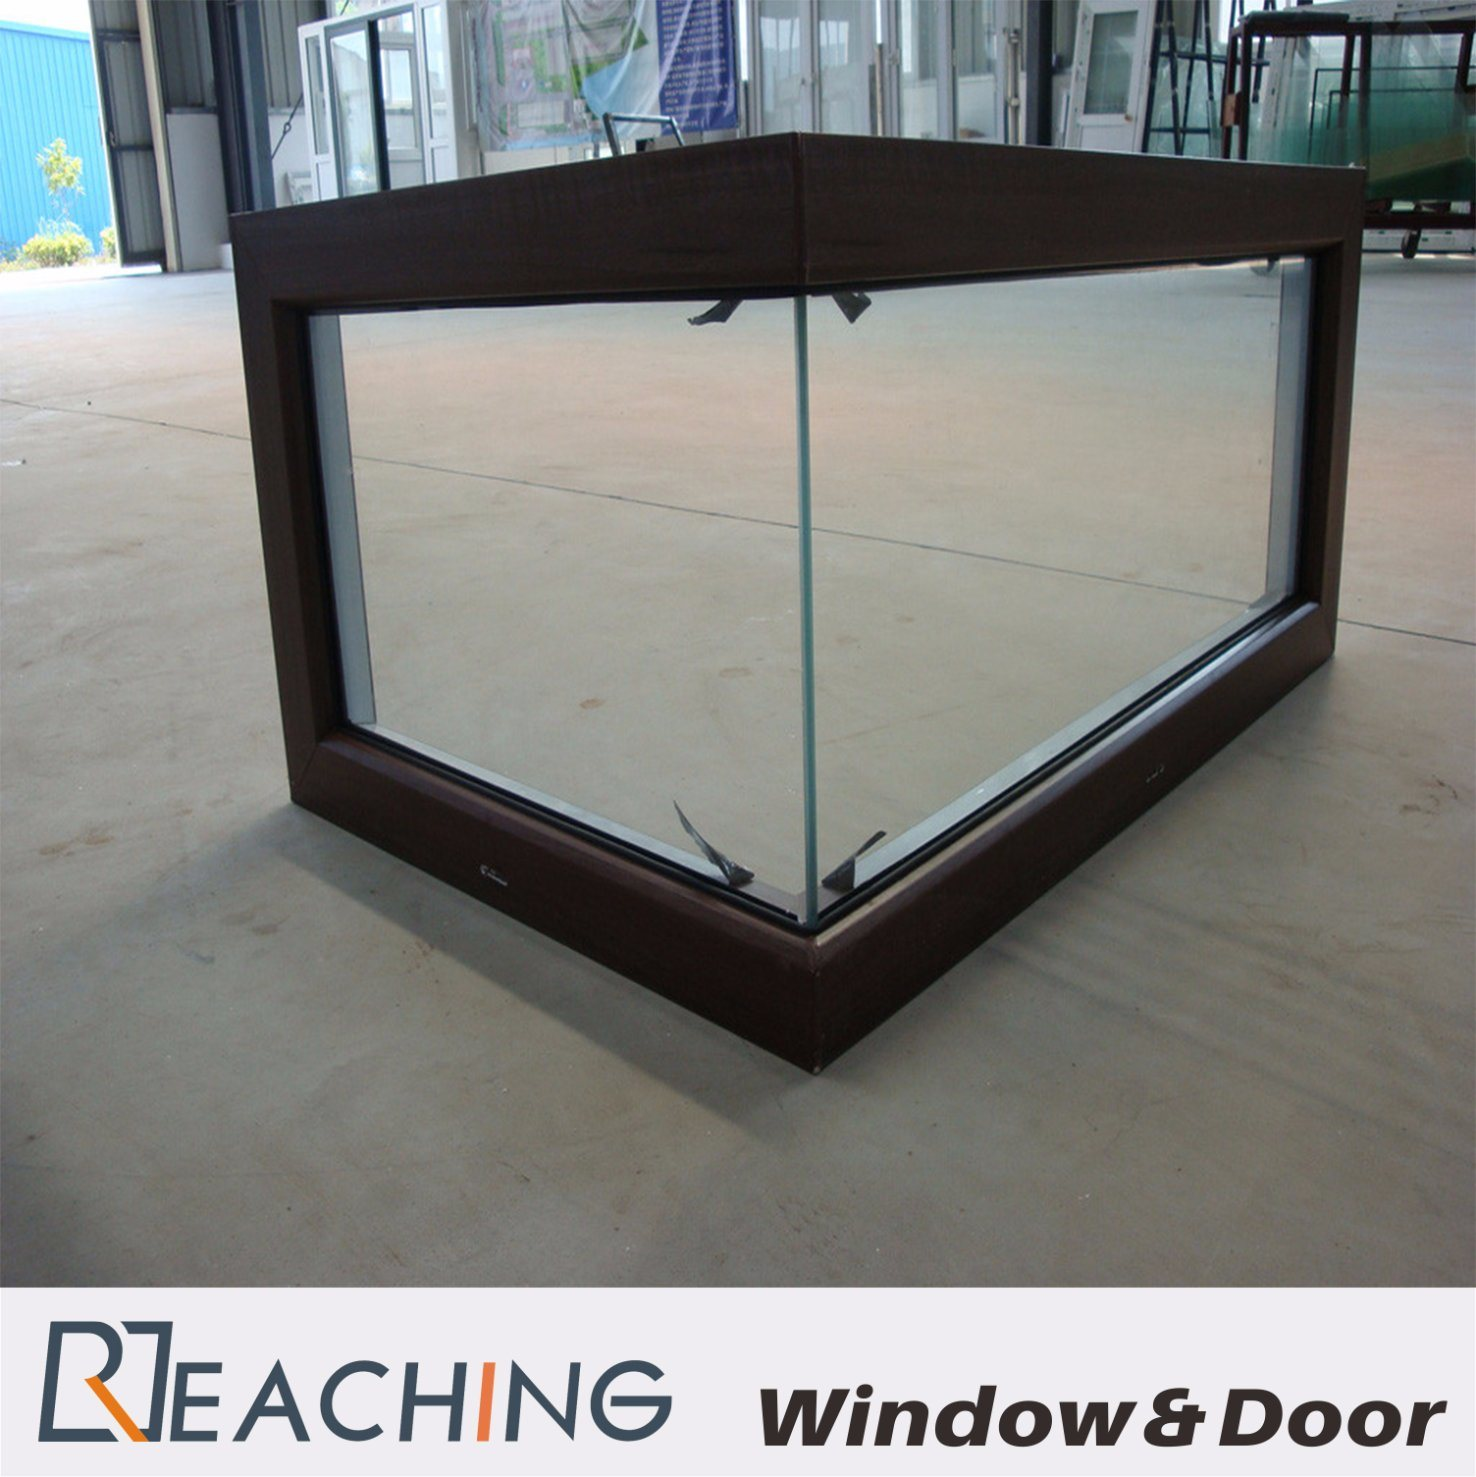 Right Angle Fixed Cornor Glass Aluminium Window Buildin Material for Order